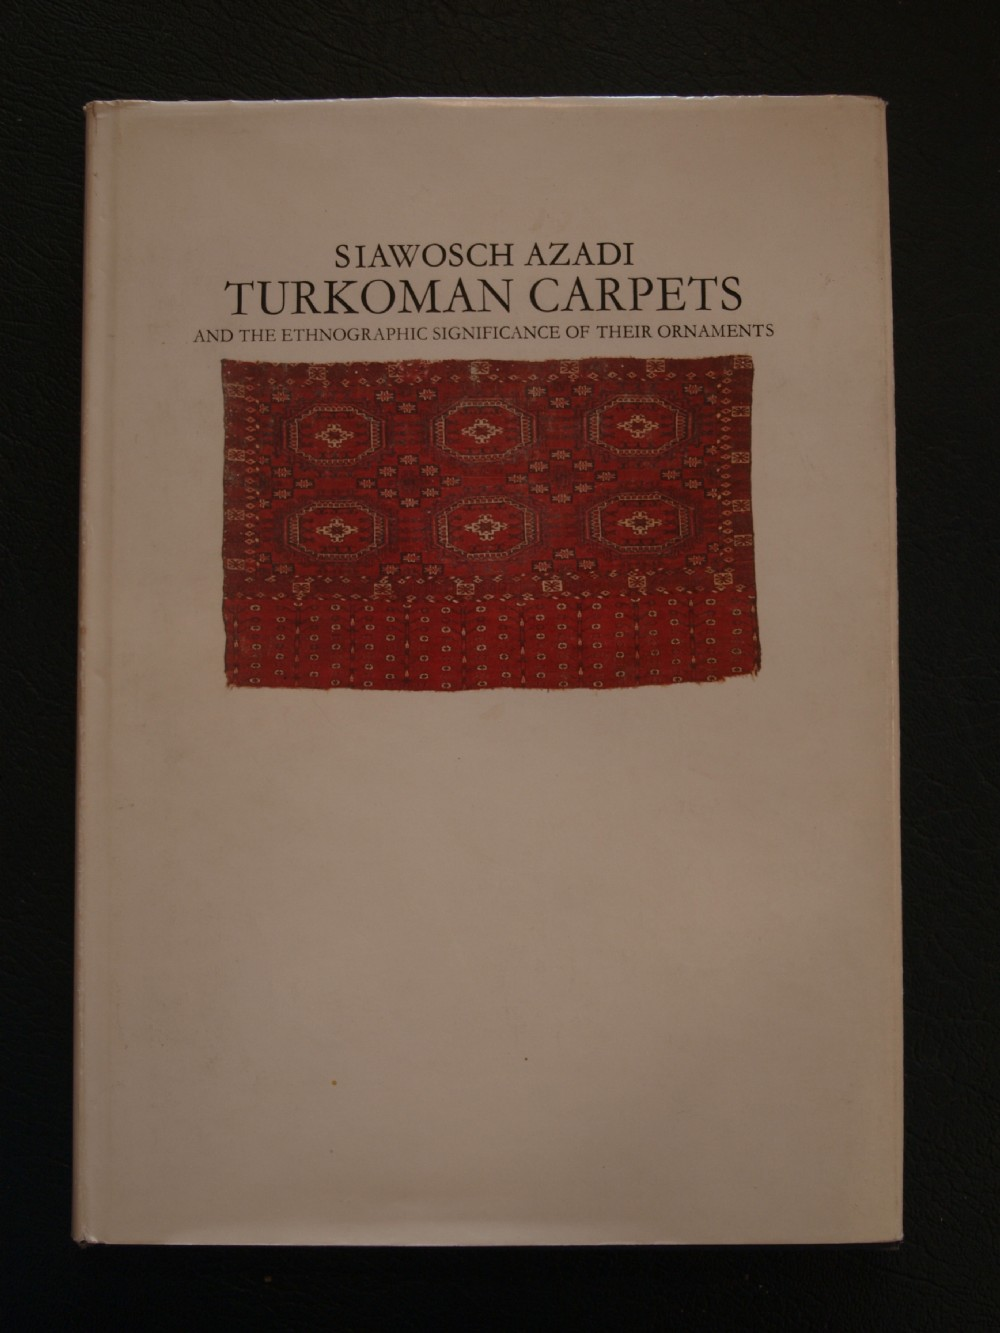 turkoman carpets and the ethnographic significance of their ornaments